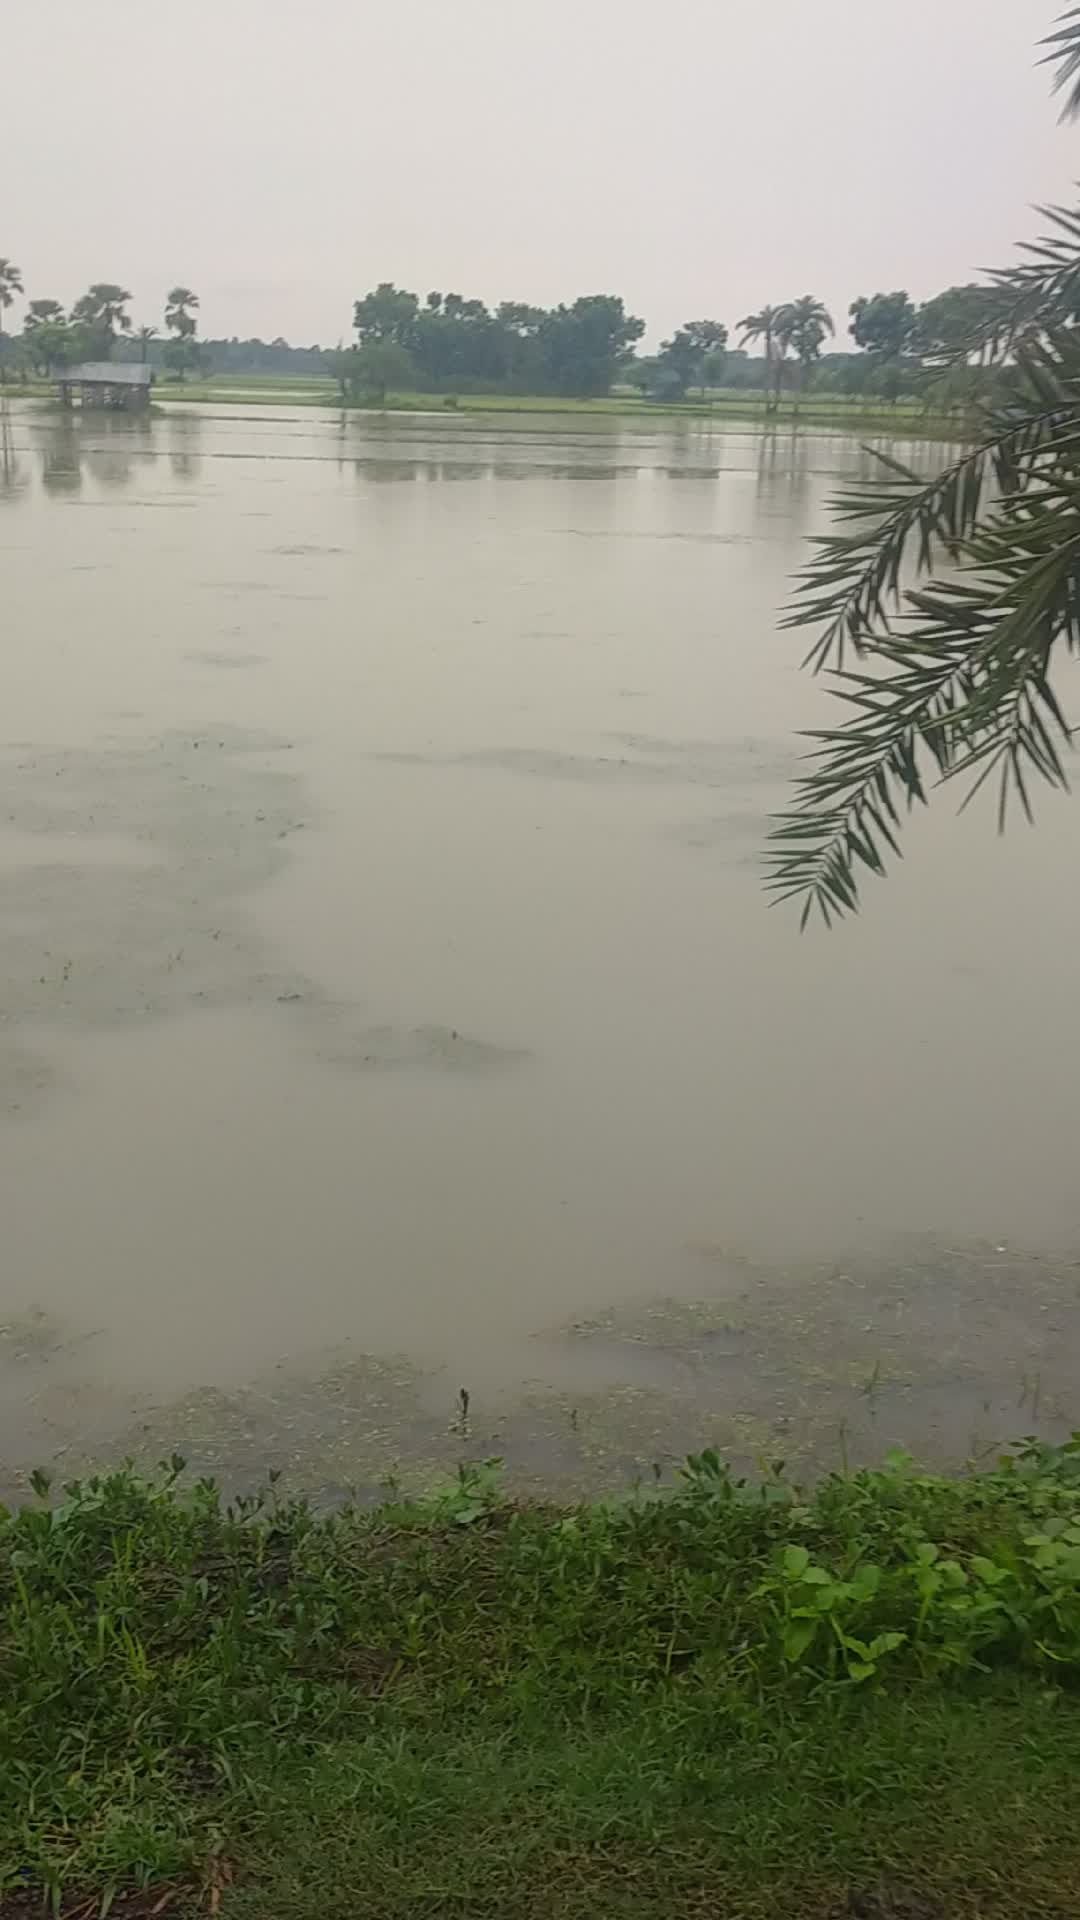 Agricultural land was damaged due to heavy rains.